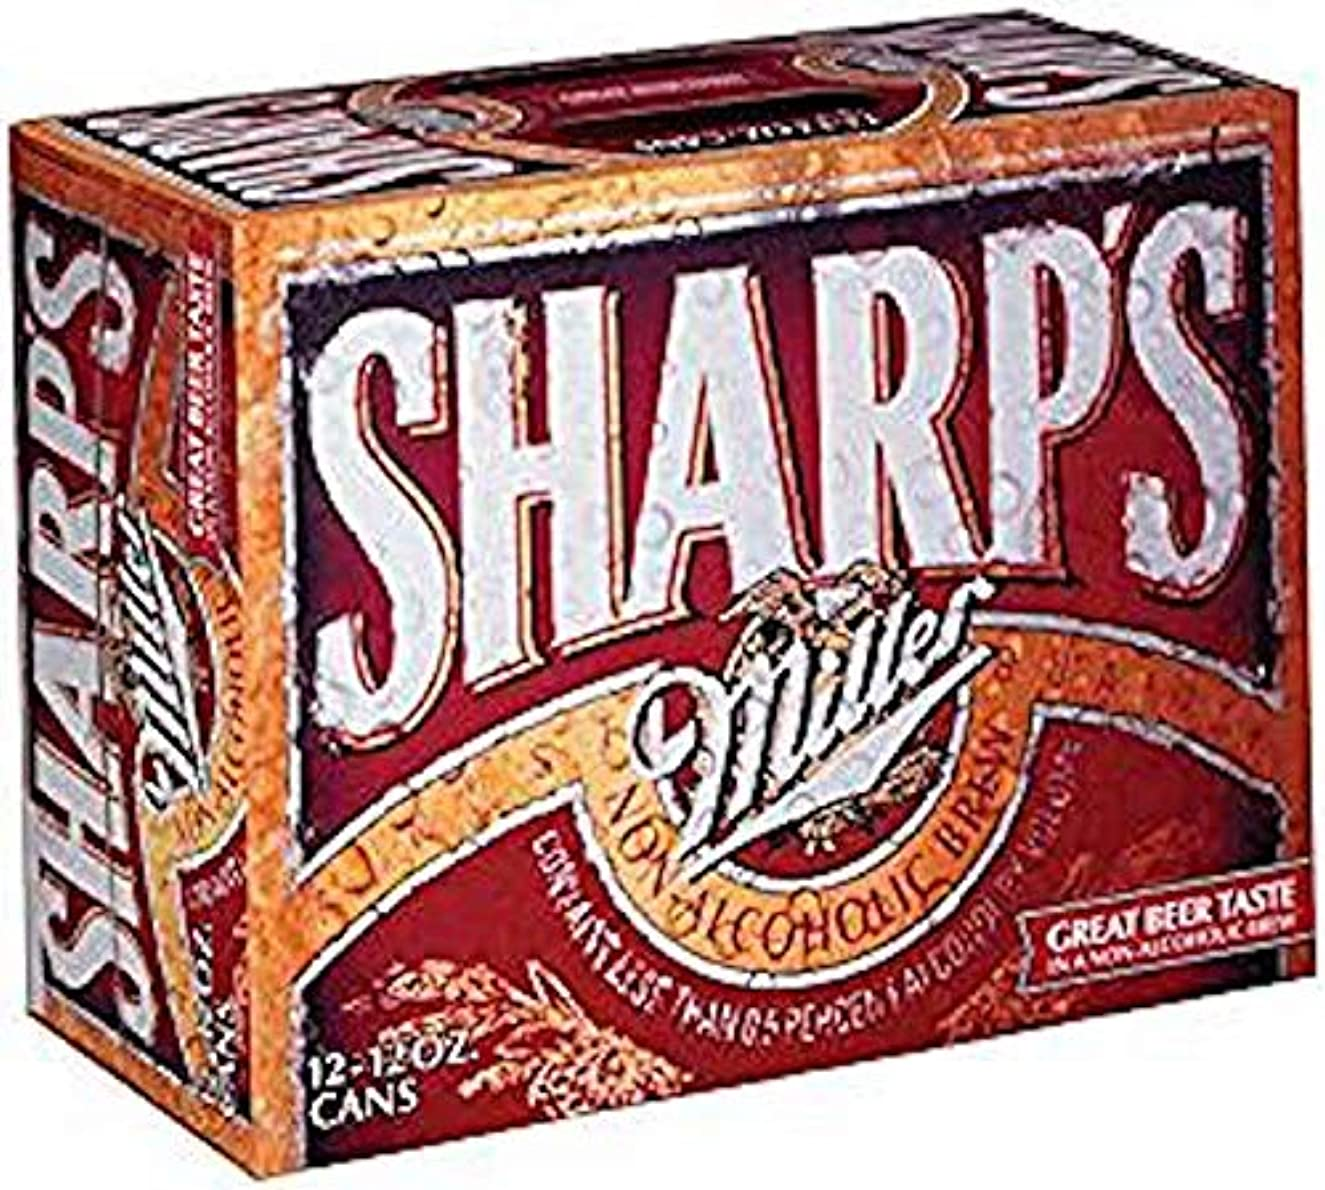 Sharp's Non-Alcoholic Beer 12 oz Cans - 12 Pack